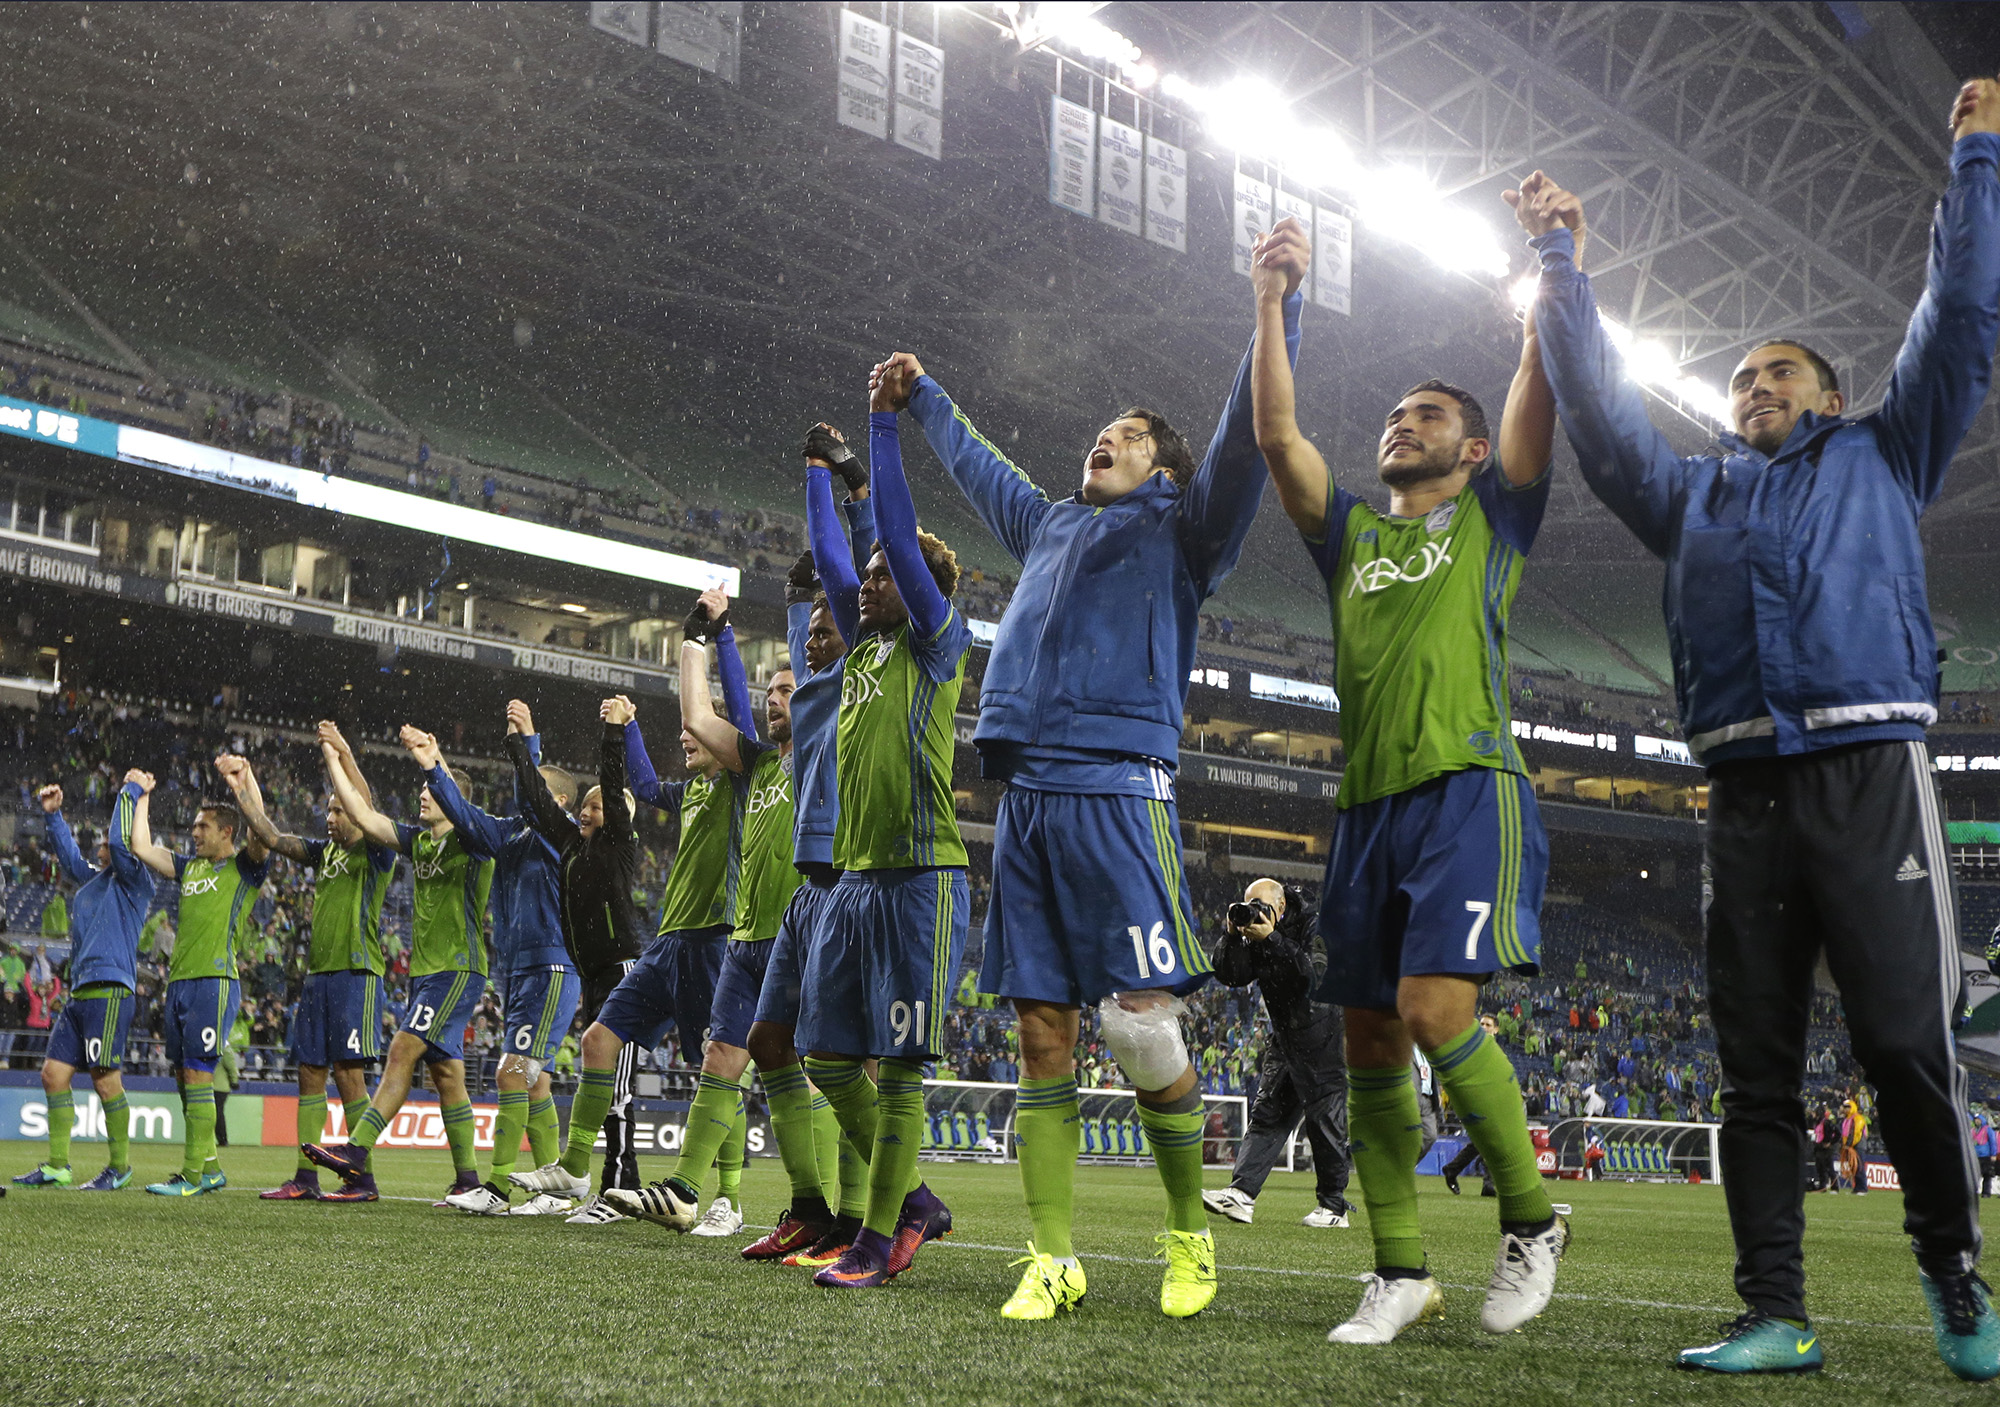 Seattle Sounders players, including Cristian Roldan (7) and Nelson Haedo Valdez (16) celebrate after they beat FC Dallas 3-0 in an MLS soccer playoff match, Sunday, Oct. 30, 2016, in Seattle. (Ted S. Warren/AP)